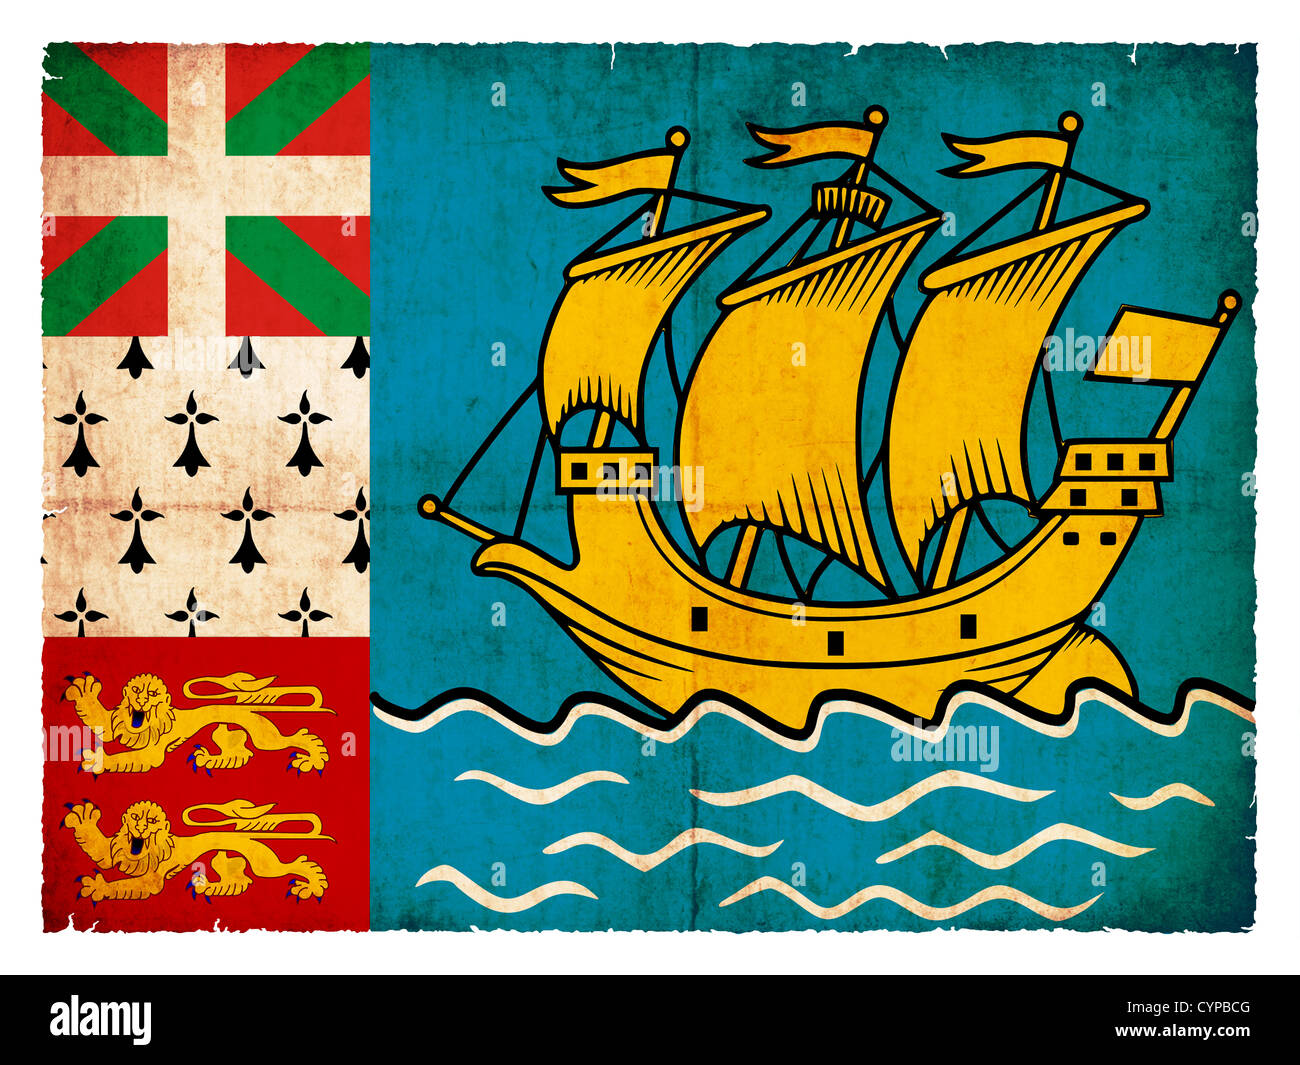 Flag of Saint-Pierre and Miquelon (Canadian Territory) created in grunge style - Stock Image